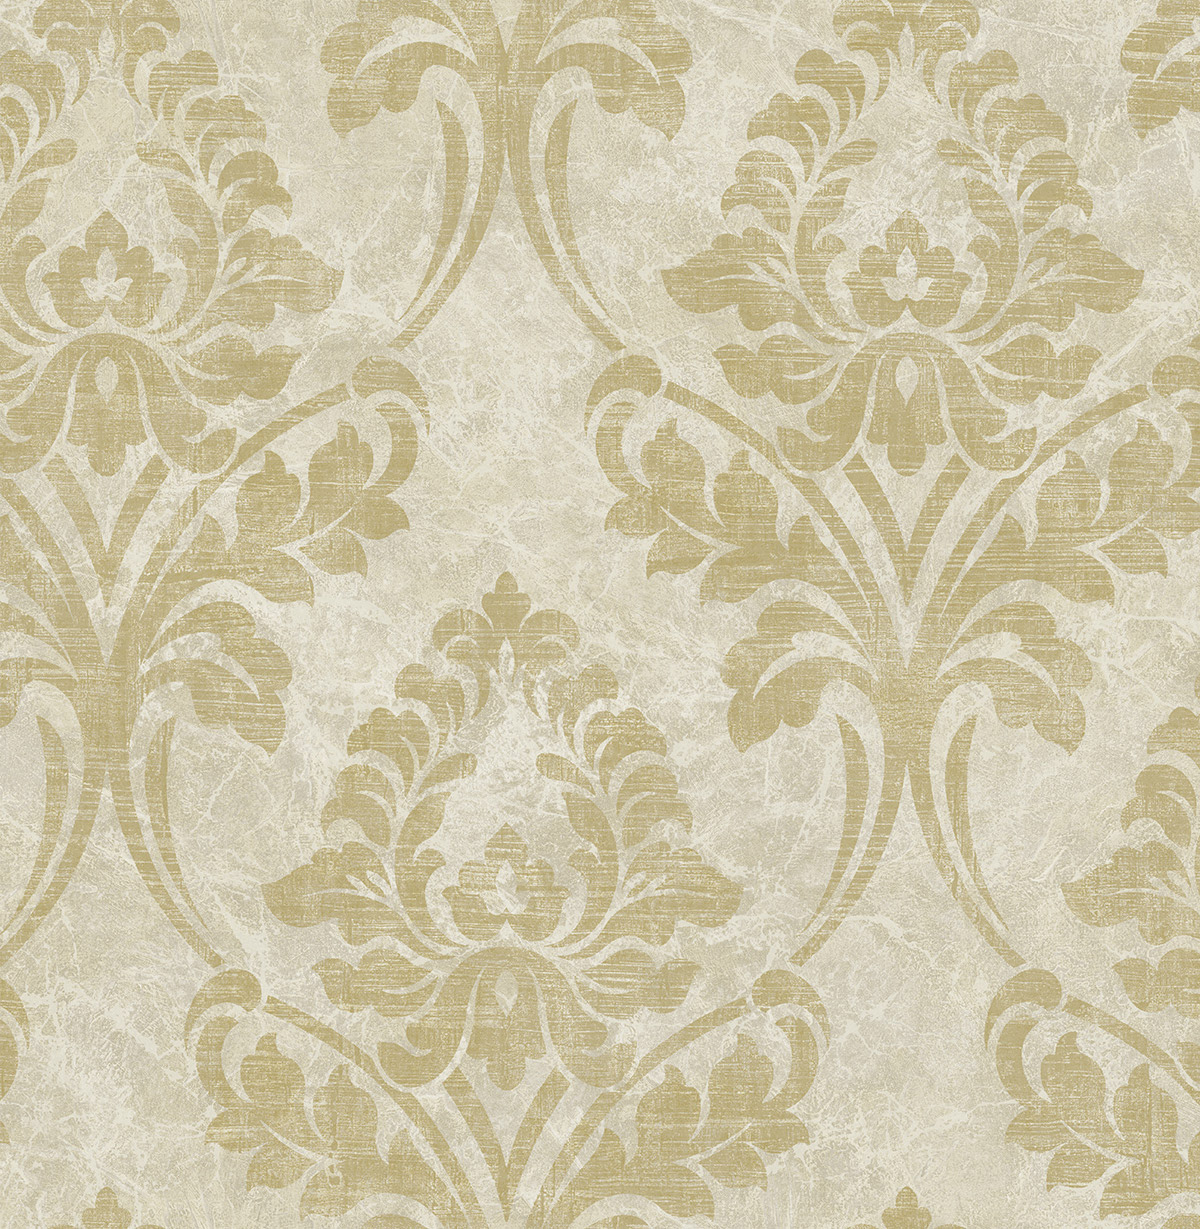 Wallquest  Bella Casa  Crackle Damask  GR60405  Page 35